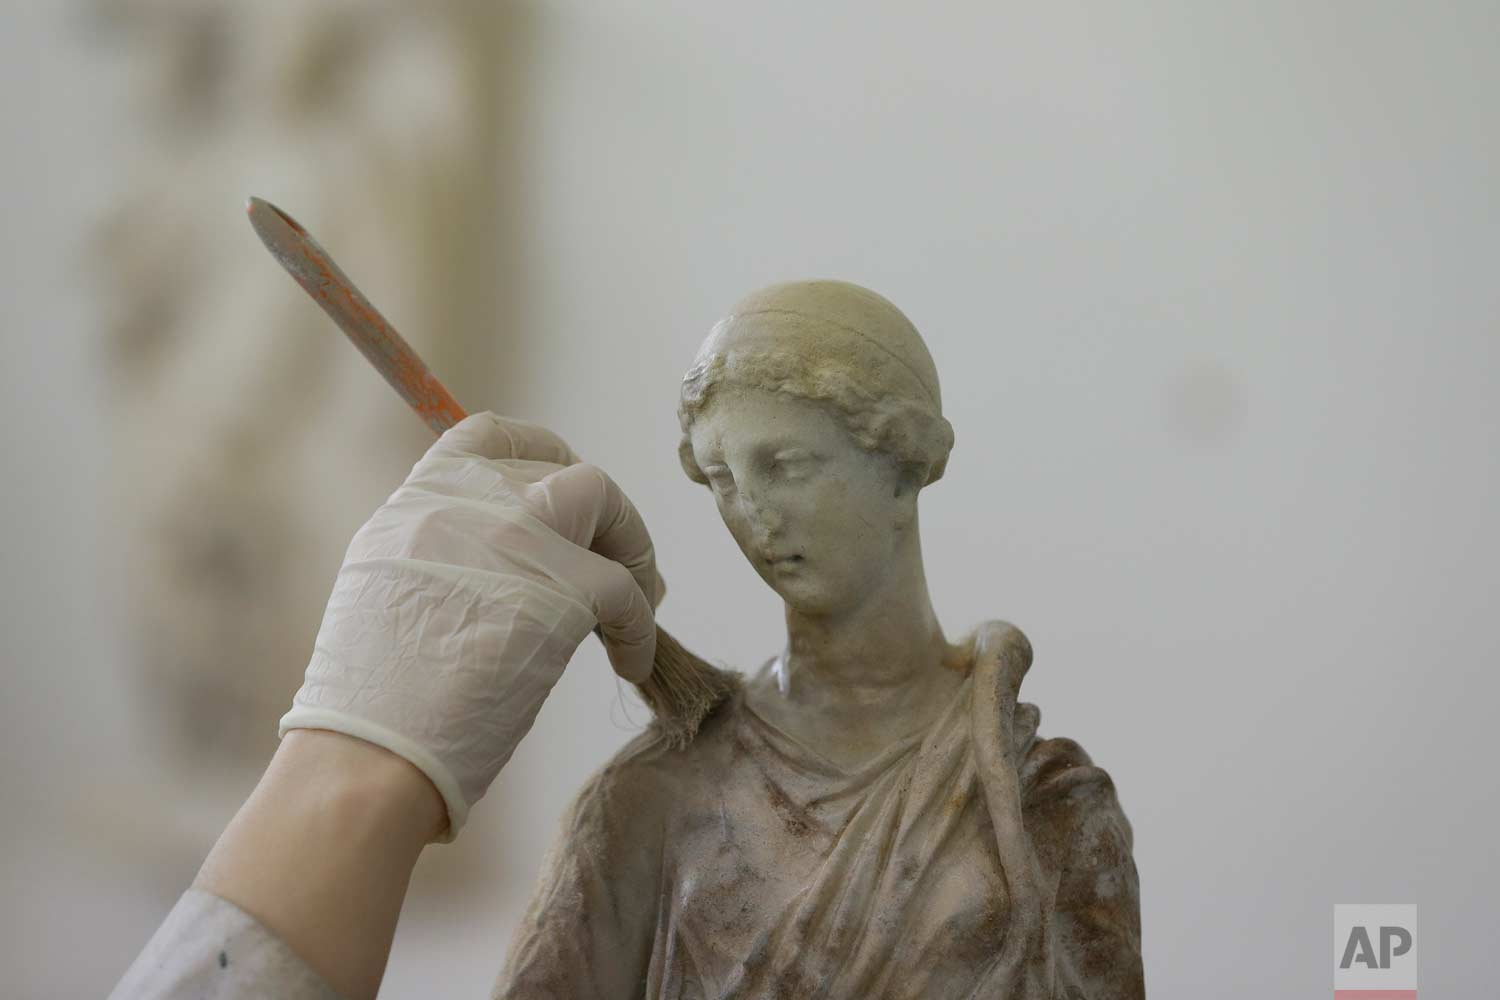 In this Monday, Jan. 22, 2018, an employee of Culture Ministry paints a plaster replica of a statue at the Lab in Athens. A team of about 50 fine arts graduates work on a range of sculptures, from a three-inch hare from Roman-era Macedonia to a seven-foot statue of Zeus, or Poseidon, made in the mid-5th century B.C. and one of the star exhibits of the National Archaeological Museum in Athens. (AP Photo/Thanassis Stavrakis)